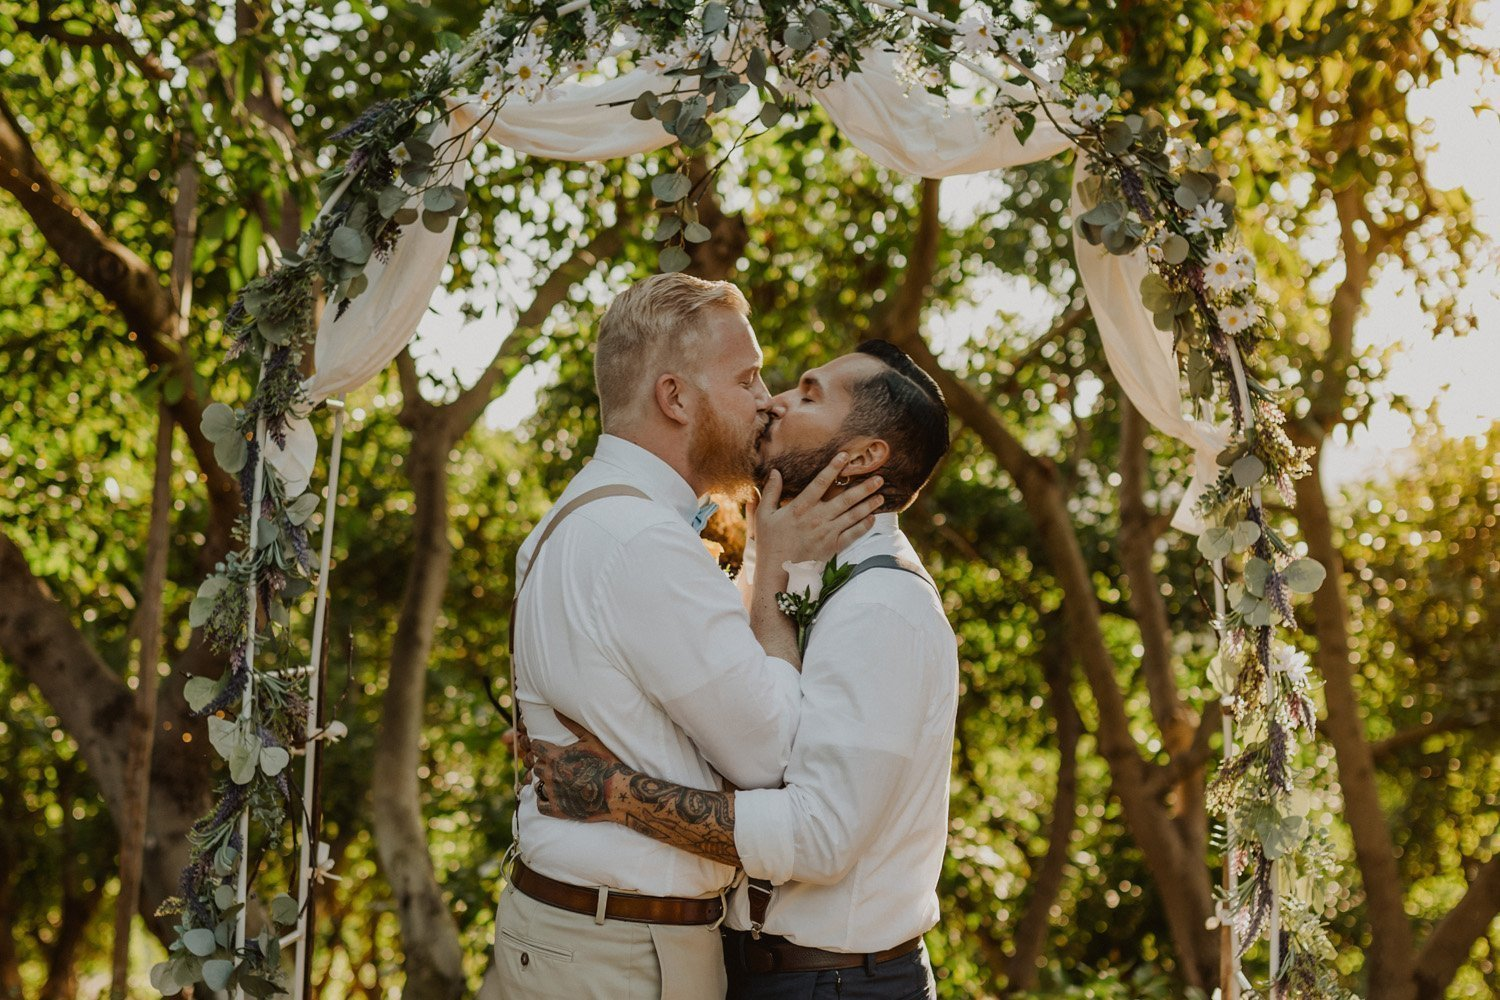 Grooms kissing during ceremony at their Valley Center avocado farm wedding